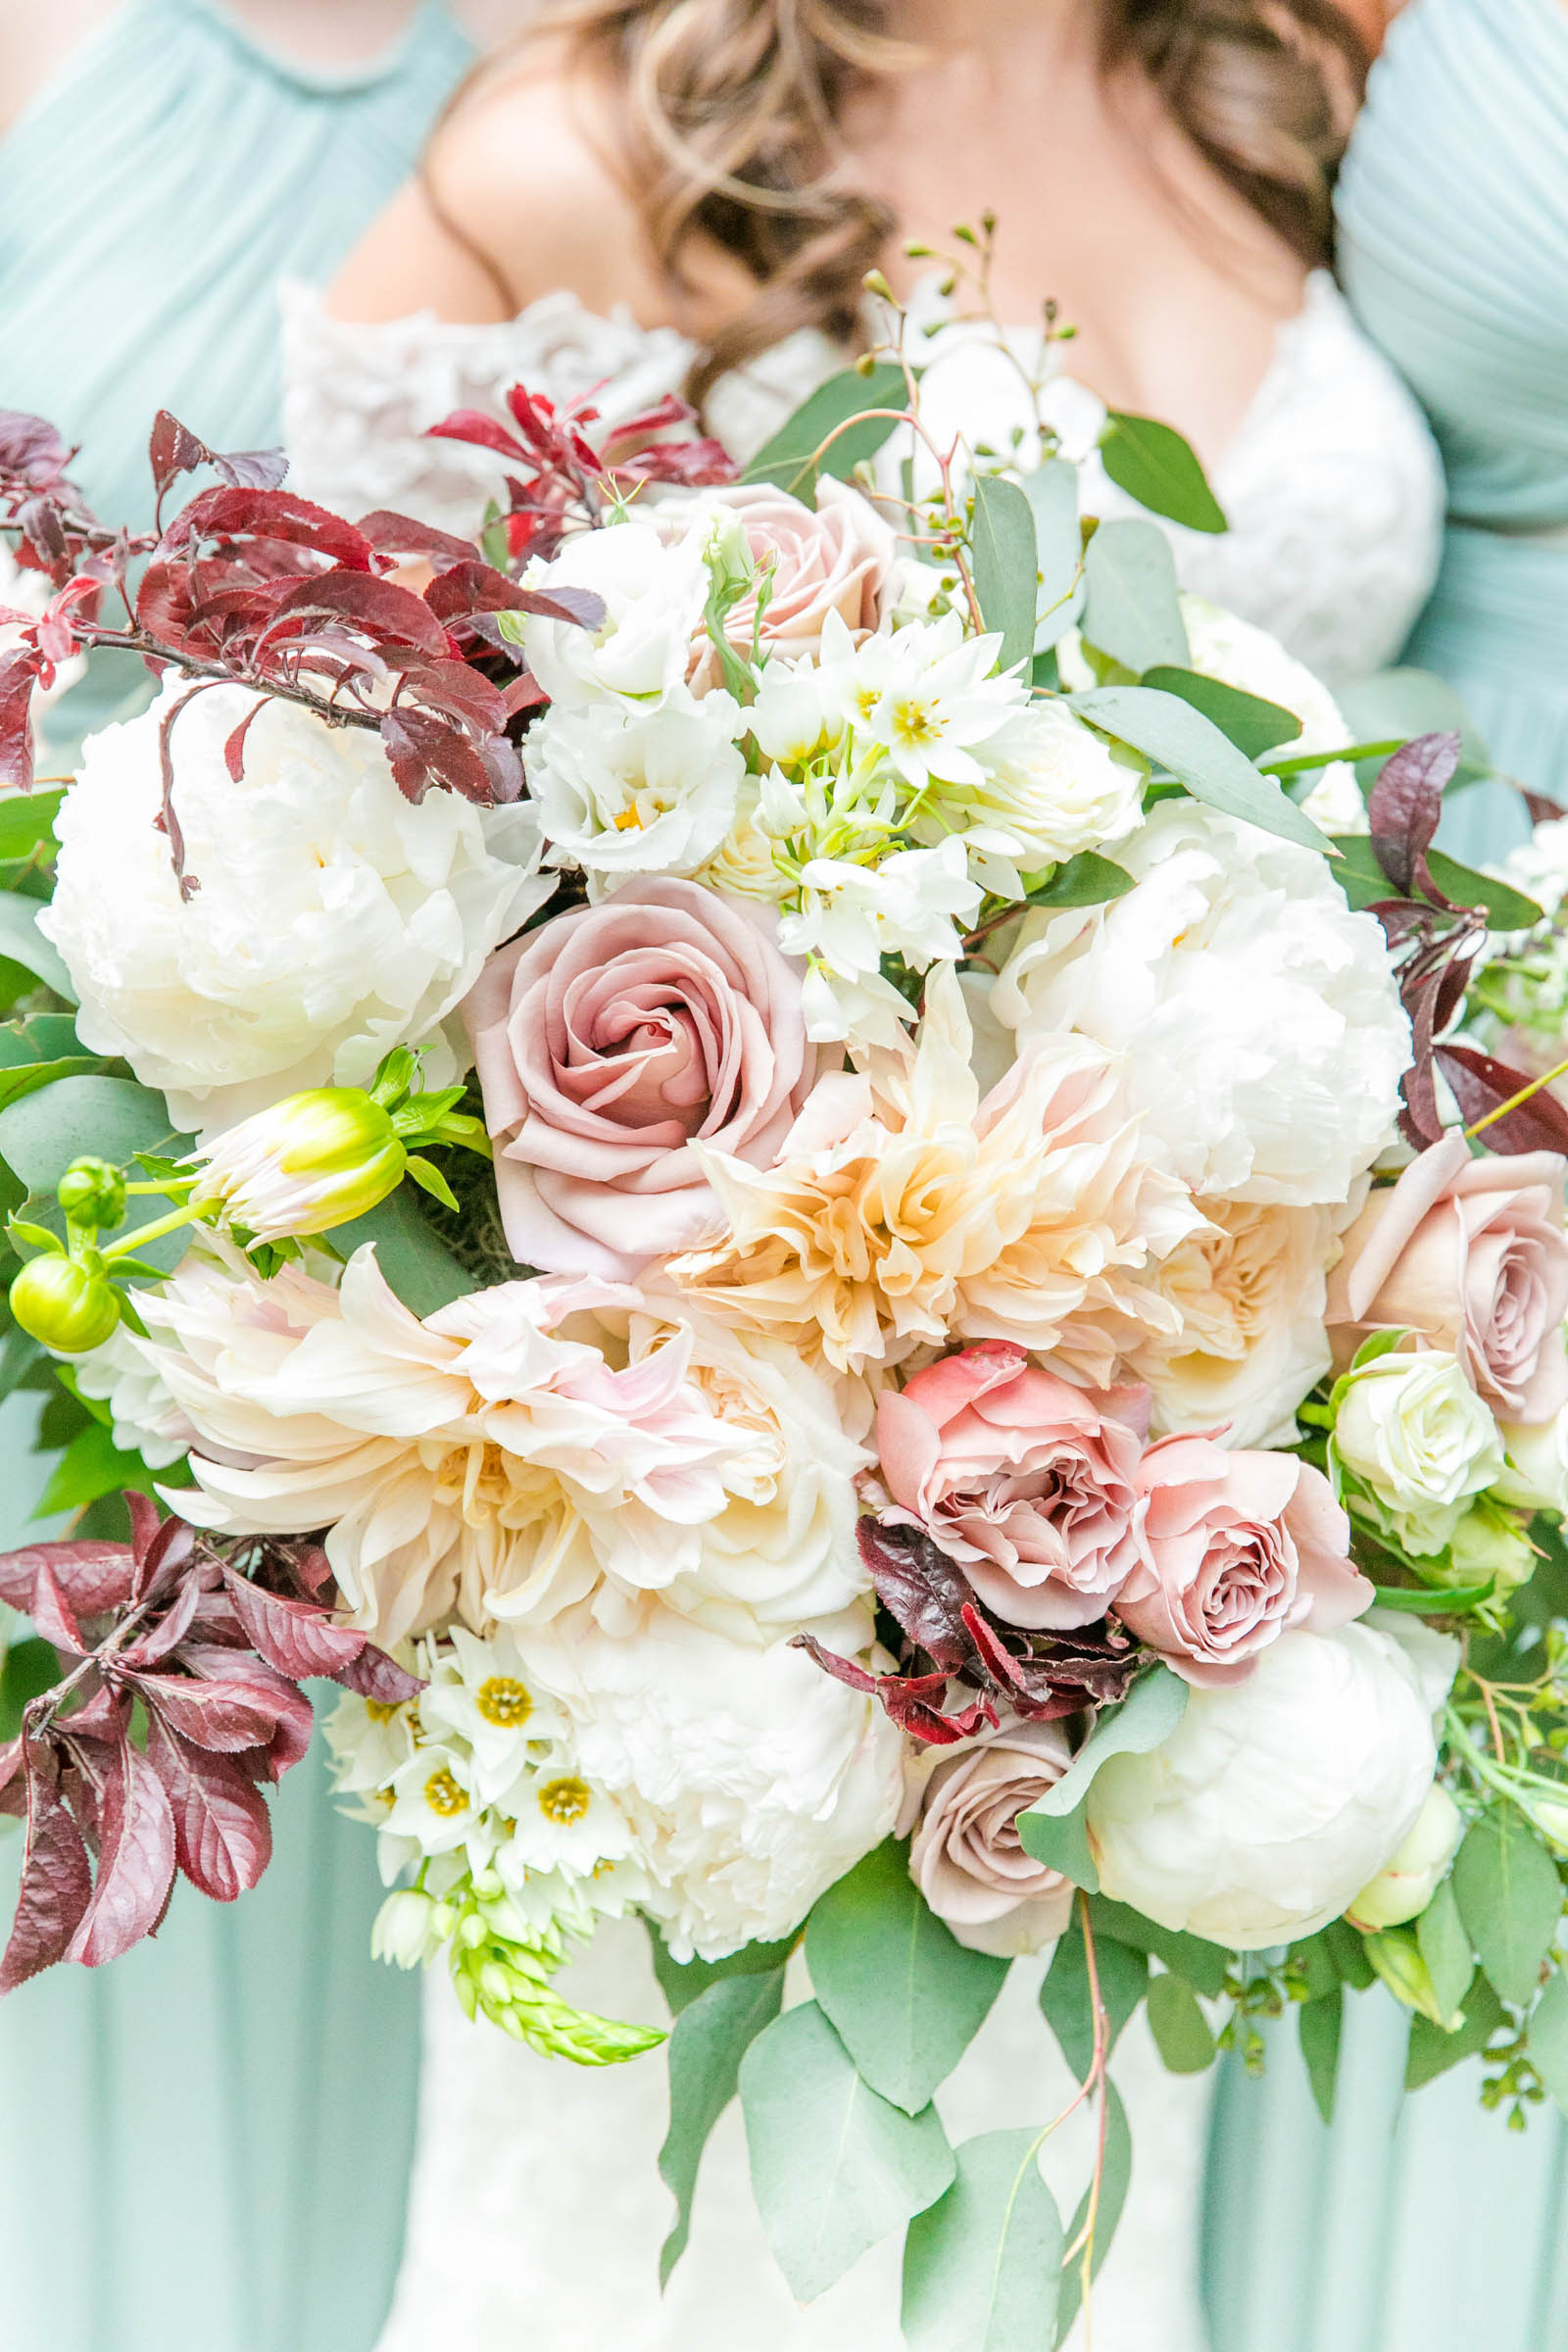 Detail of bridal bouquet - photo by Dana Cubbage Weddings